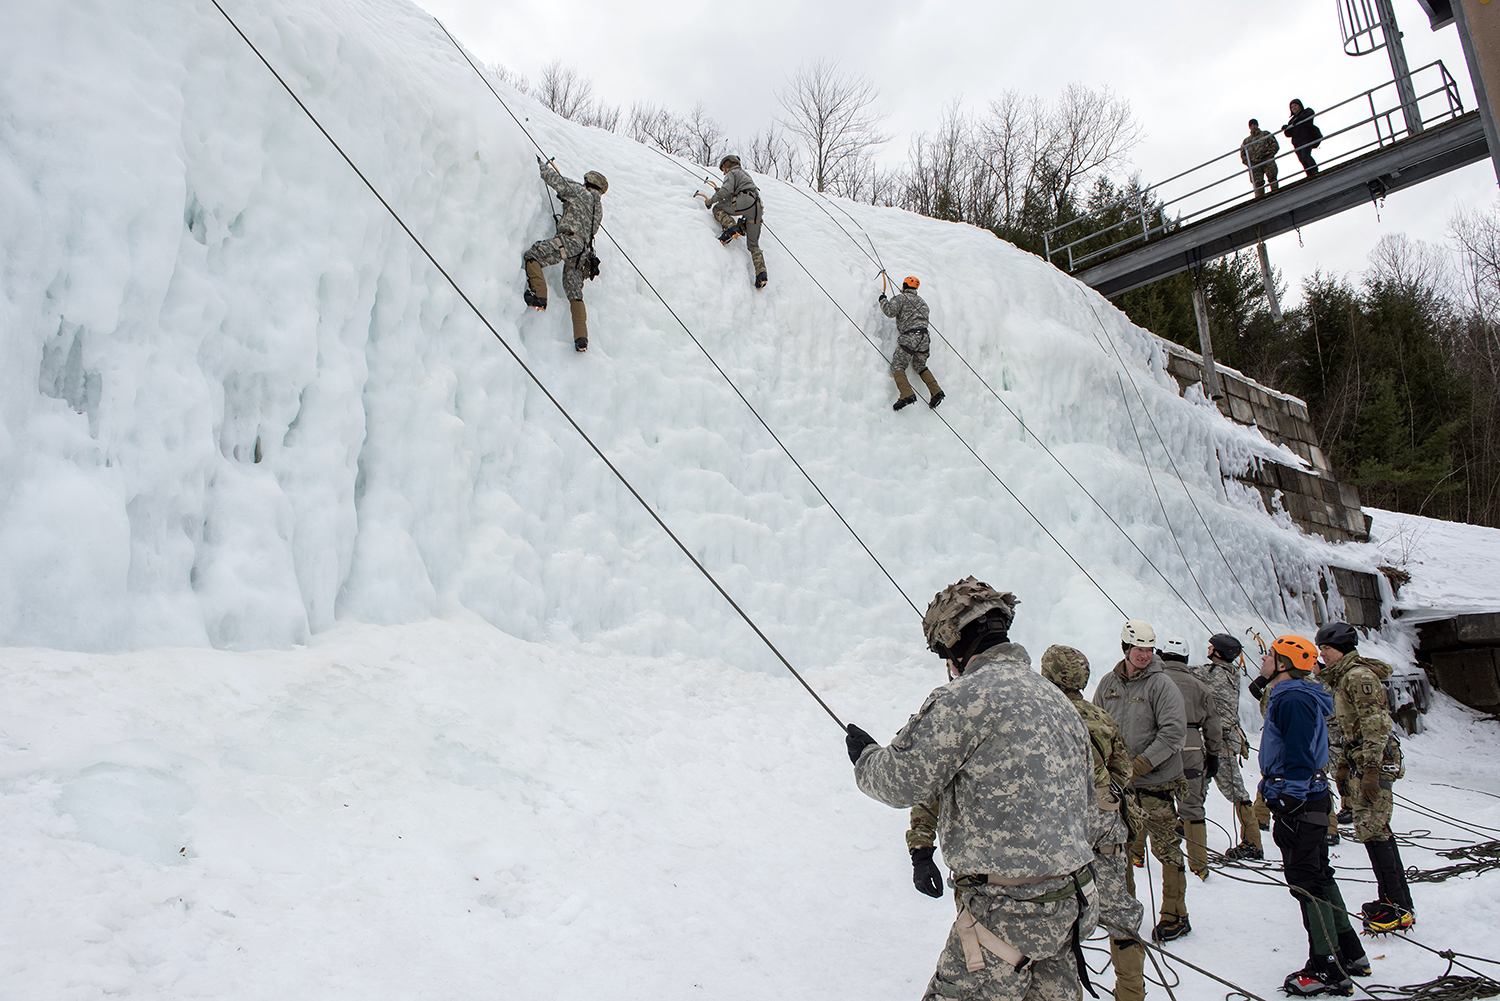 Secretary of the Army Dr. Mark T. Esper observes soldiers climbing an ice wall at the Army Mountain Warfare School on Camp Ethan Allen Training Site, Jericho, Vt., March 16, 2019. (Master Sgt. Sarah Mattison/Air National Guard)